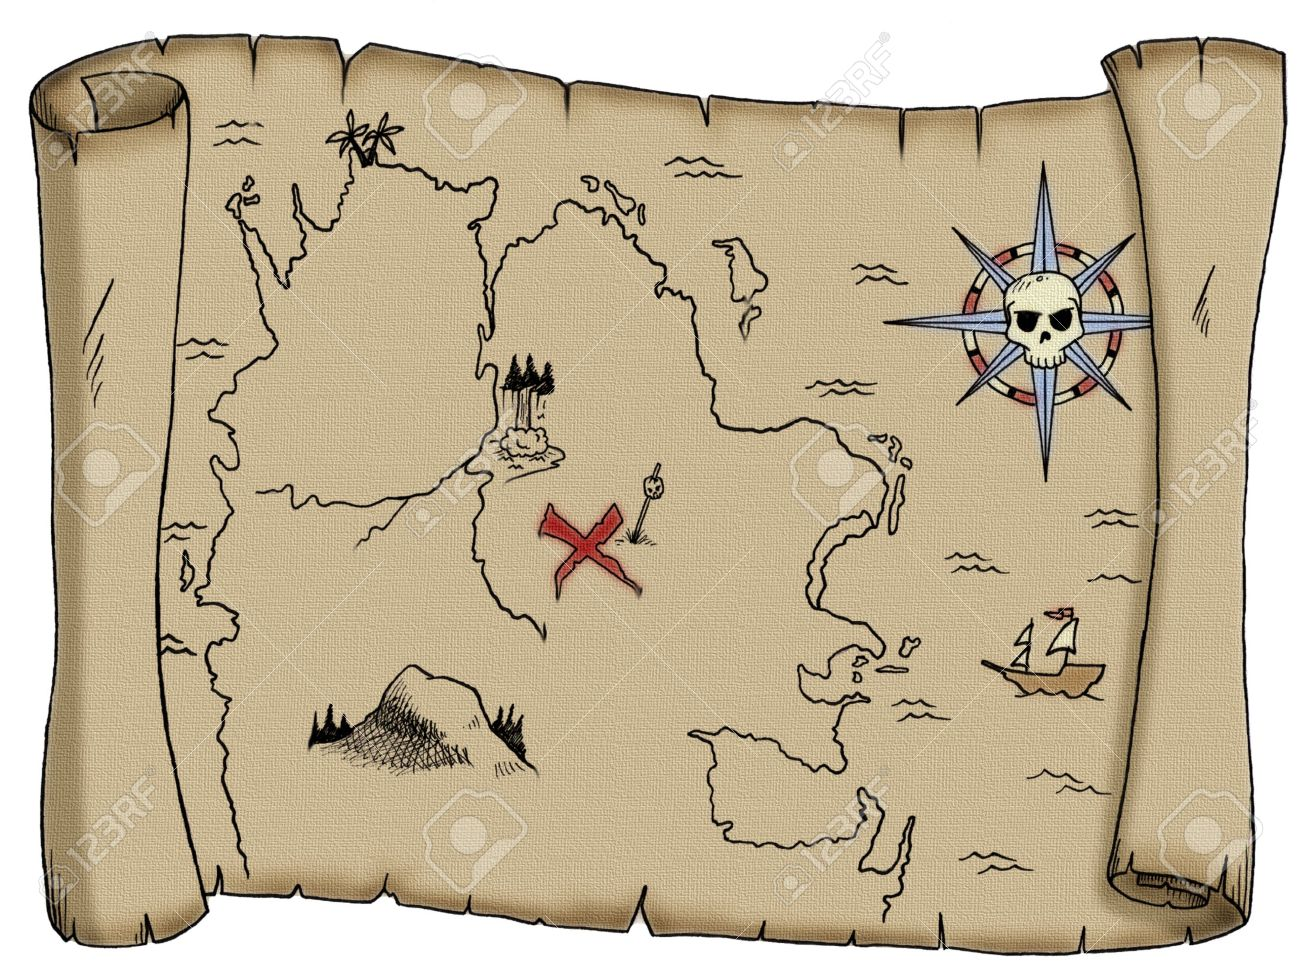 carte au trésor pirate A Tattered, Blank Pirate Treasure Map. Stock Photo, Picture And